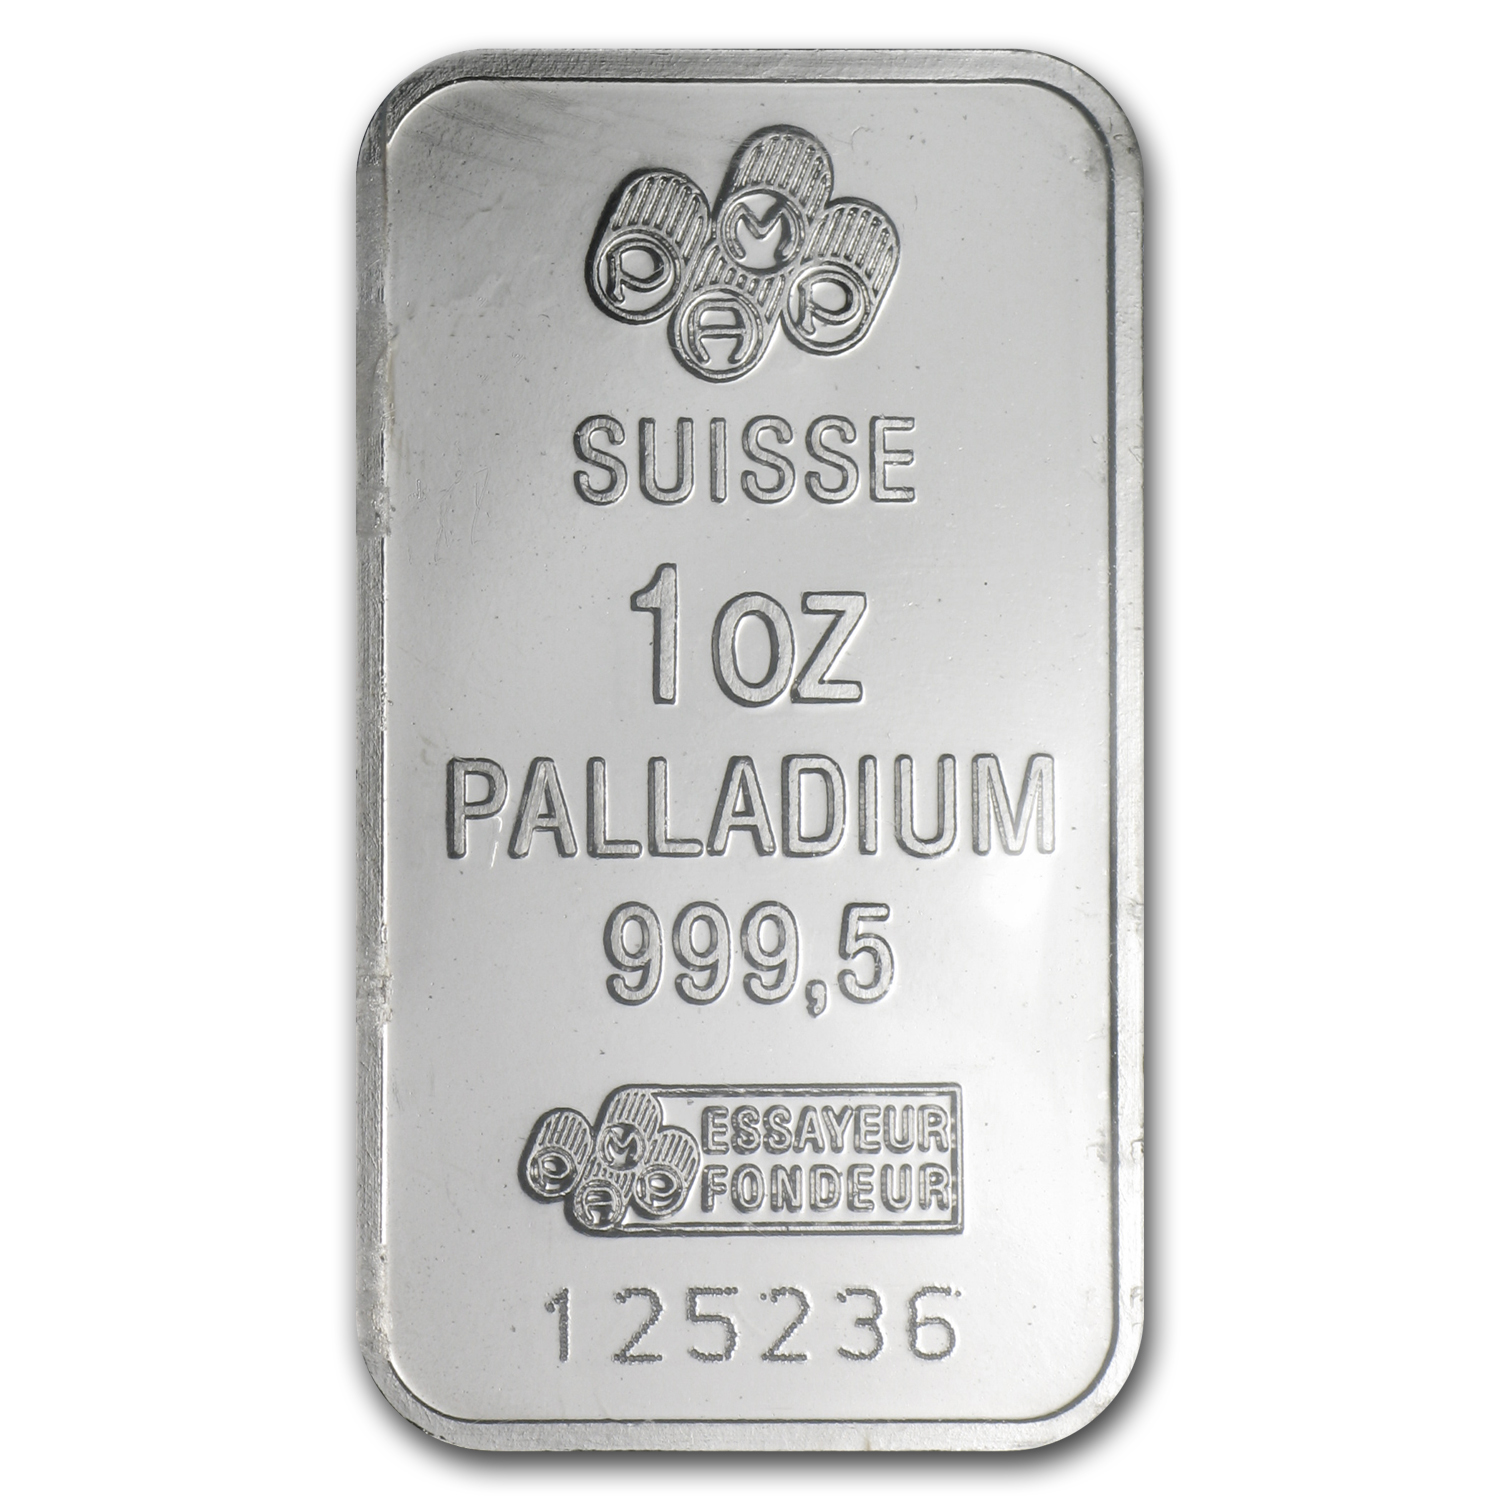 1 oz Palladium Bar - Pamp Suisse (No Assay)